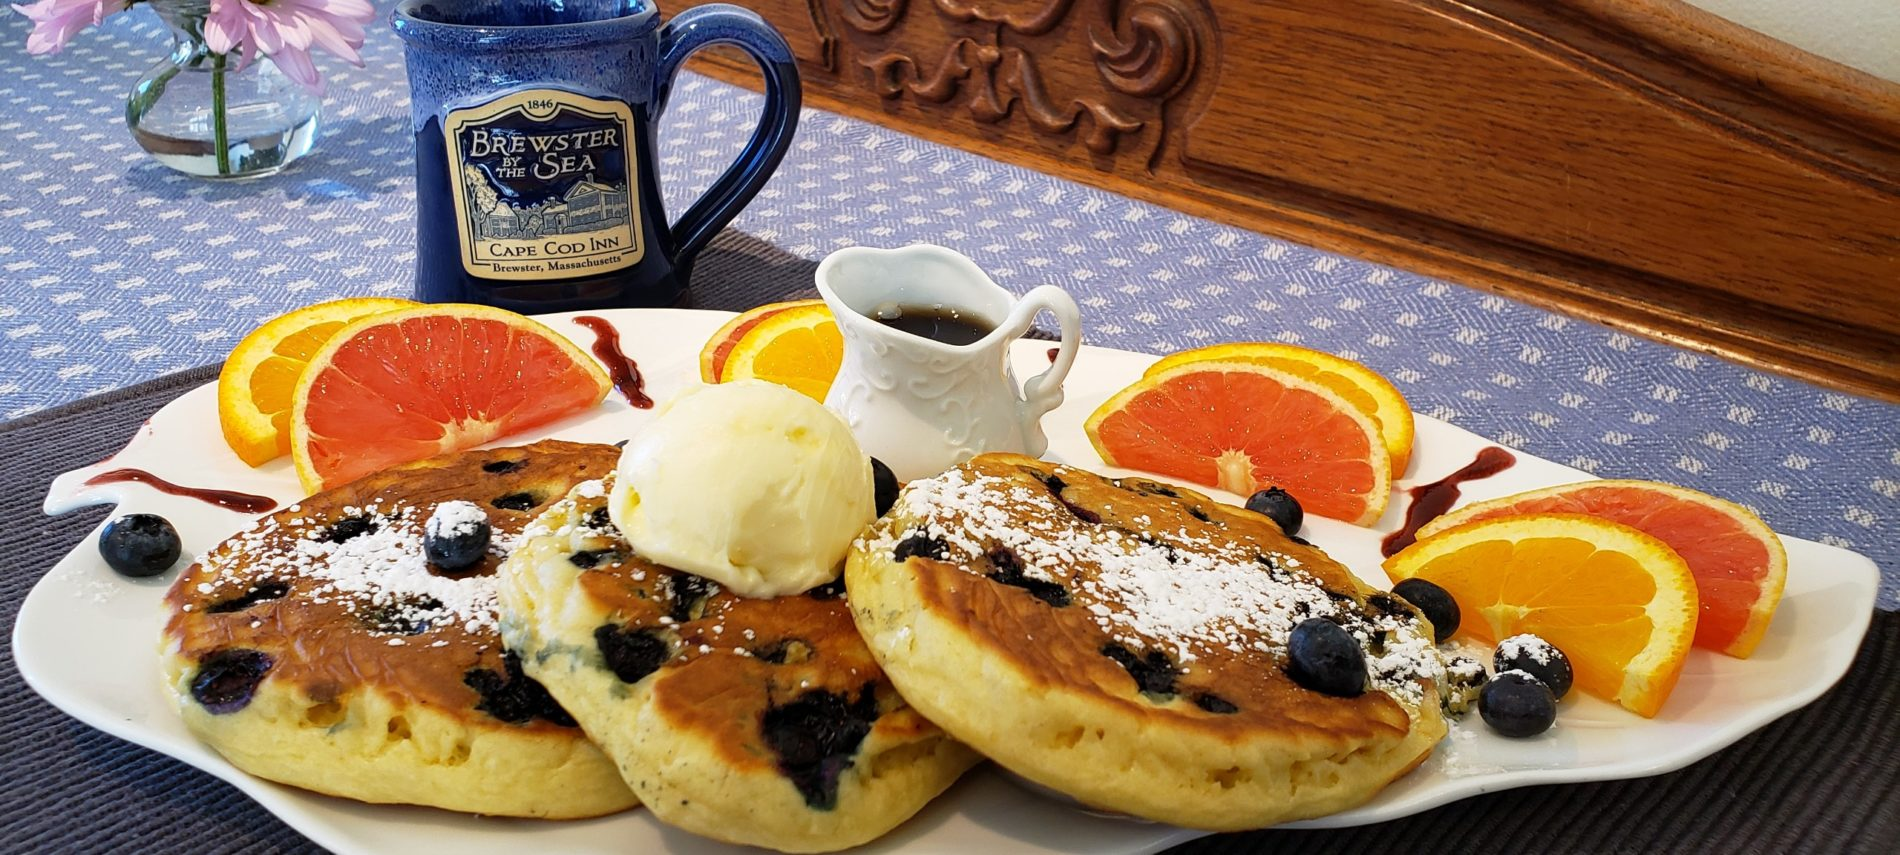 Blueberry Crumb Pancakes on a plate with orange slices and maple syrup